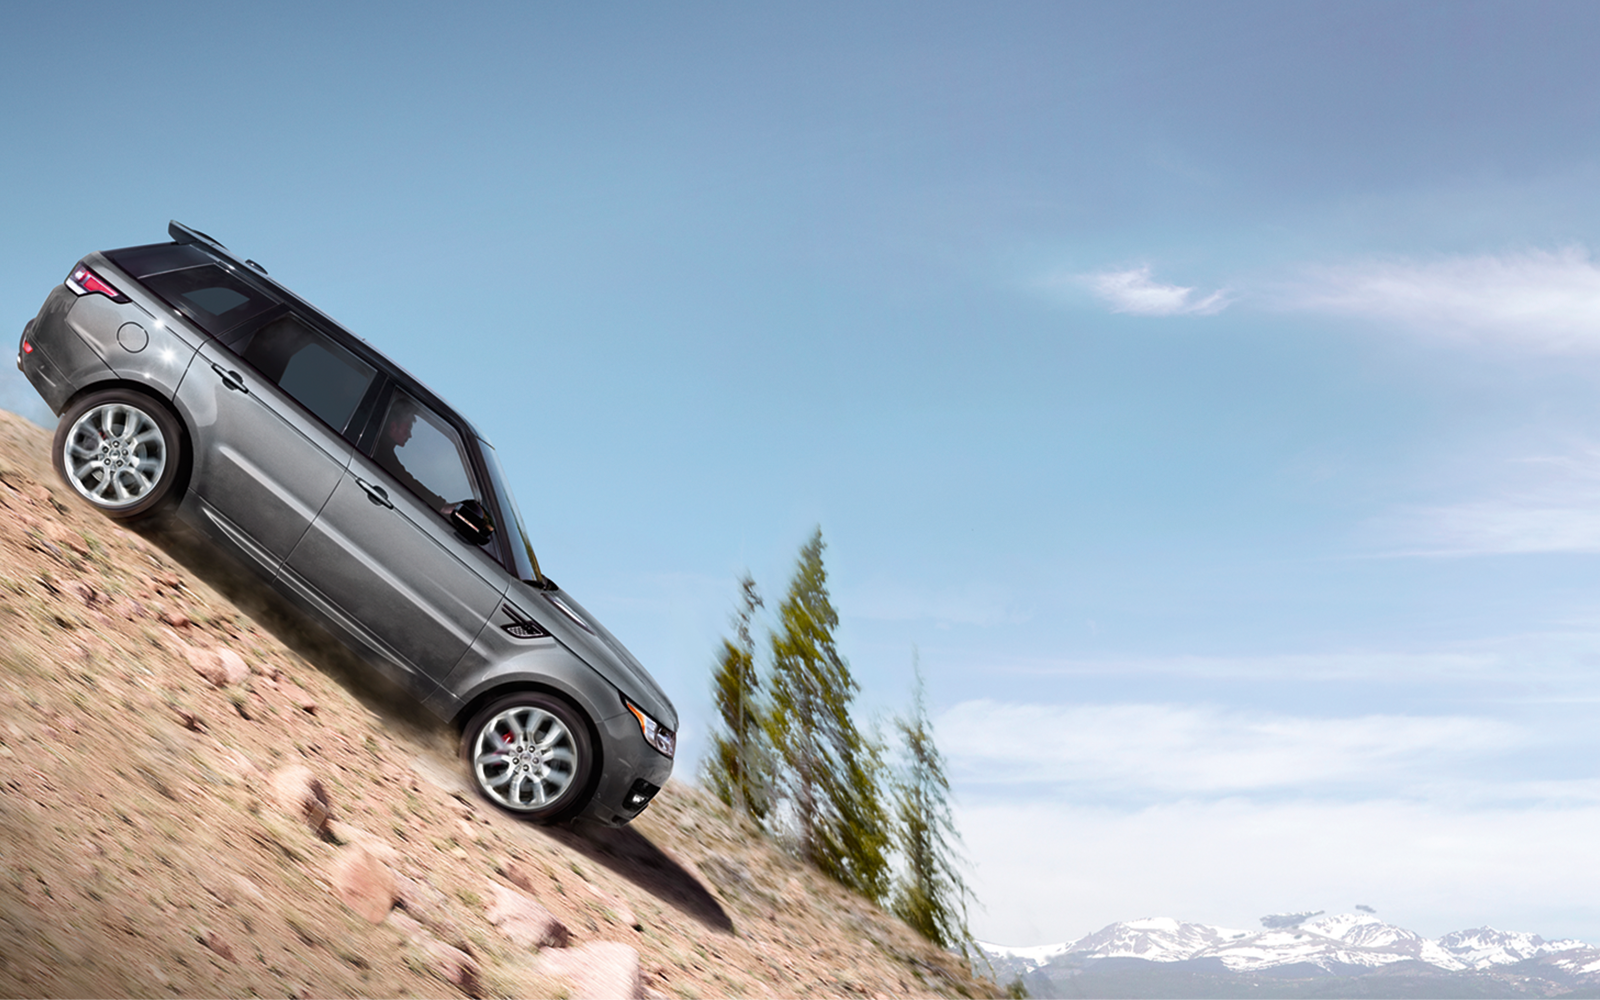 Range Rover Sport Performance and control